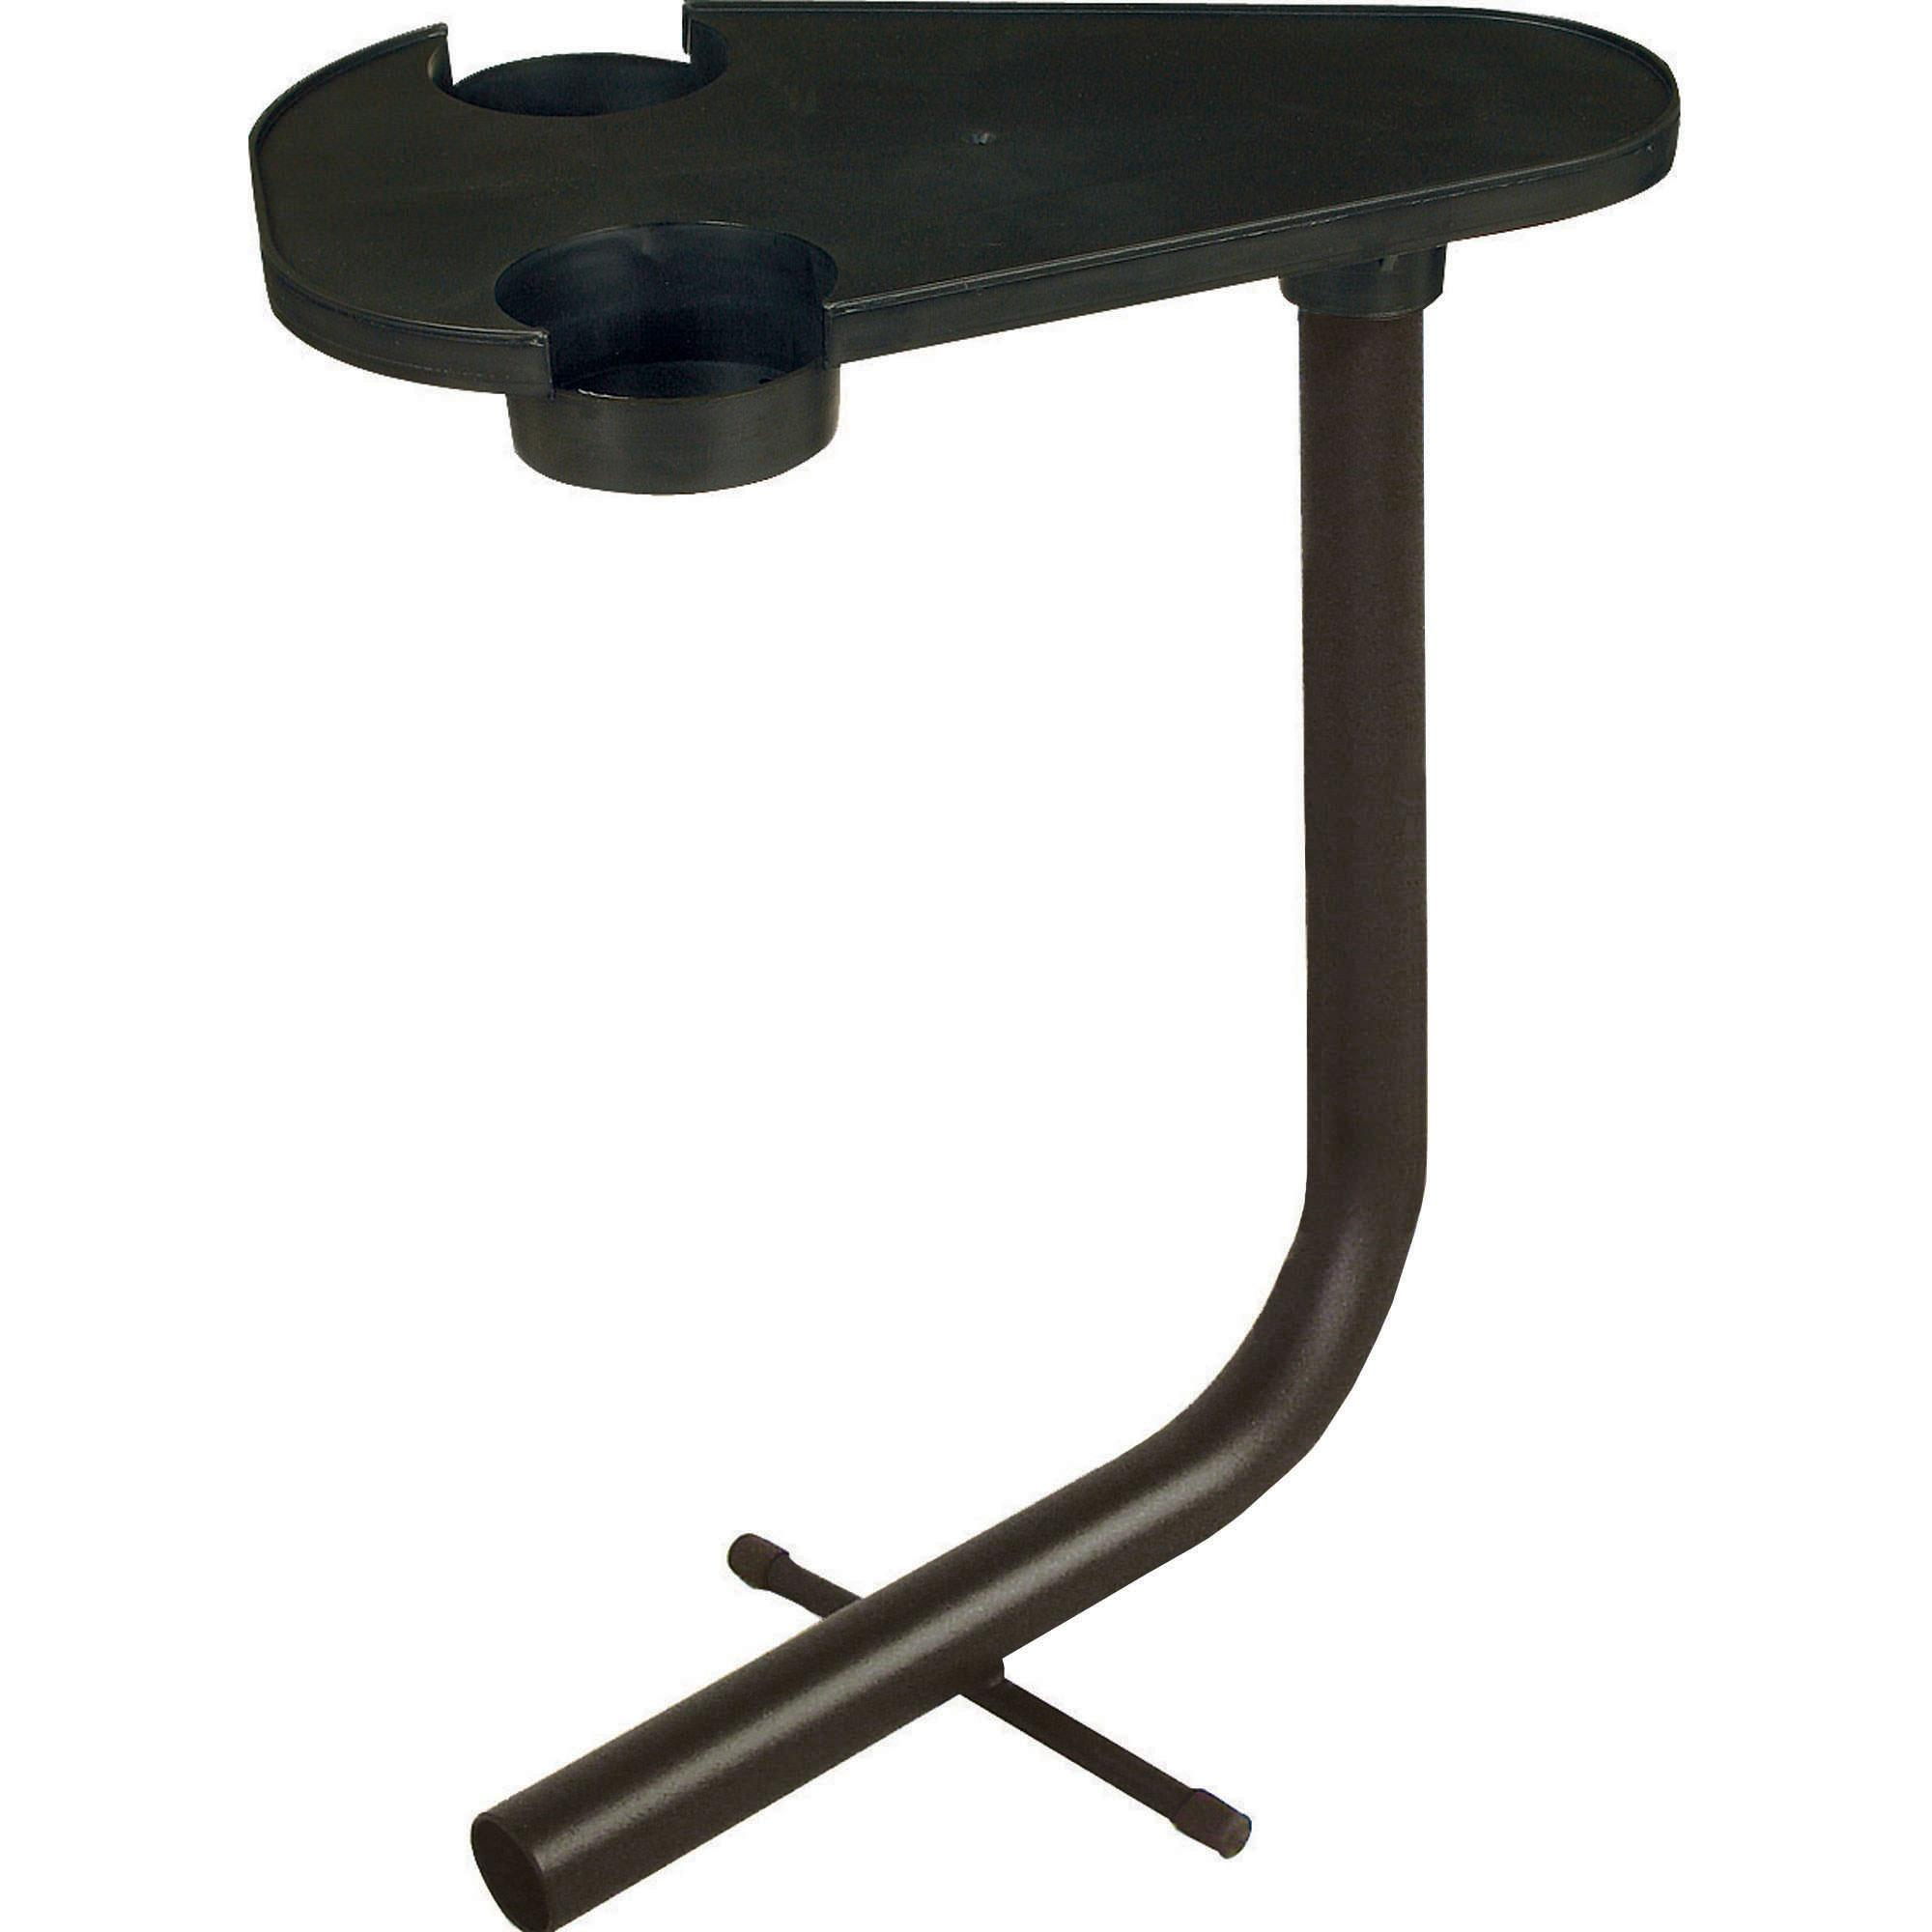 revolving chair spare parts in mumbai shampoo bowl and black poled hammock table on sale tblbktx